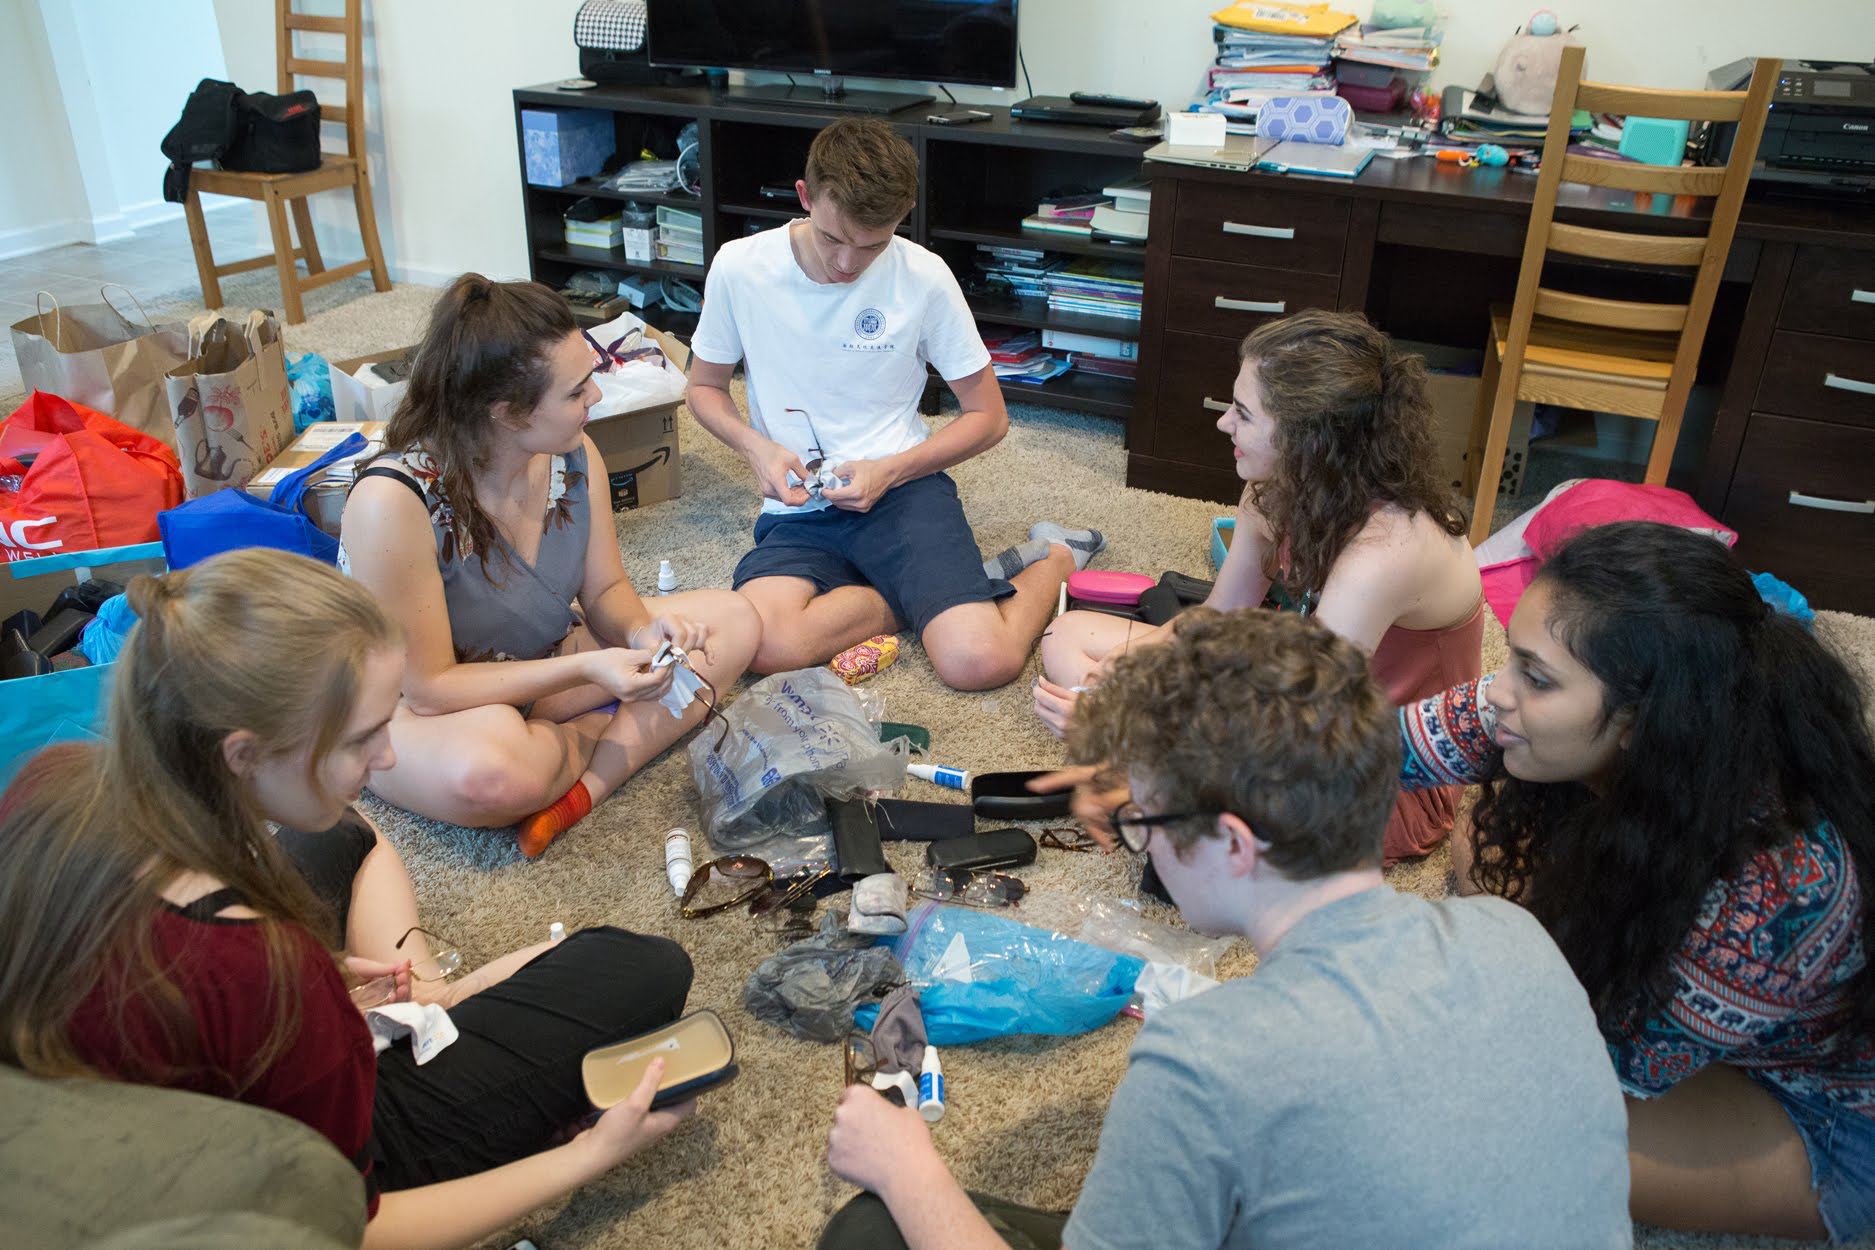 Hiruni's friends from Seneca Valley High School gather at her house in early June, 2018, to help sort, clean and wrap donated pairs of eyeglasses collected throughout the previous year. In total, Close to My Heart provided over 1,000 pairs of glasses for the August clinic.